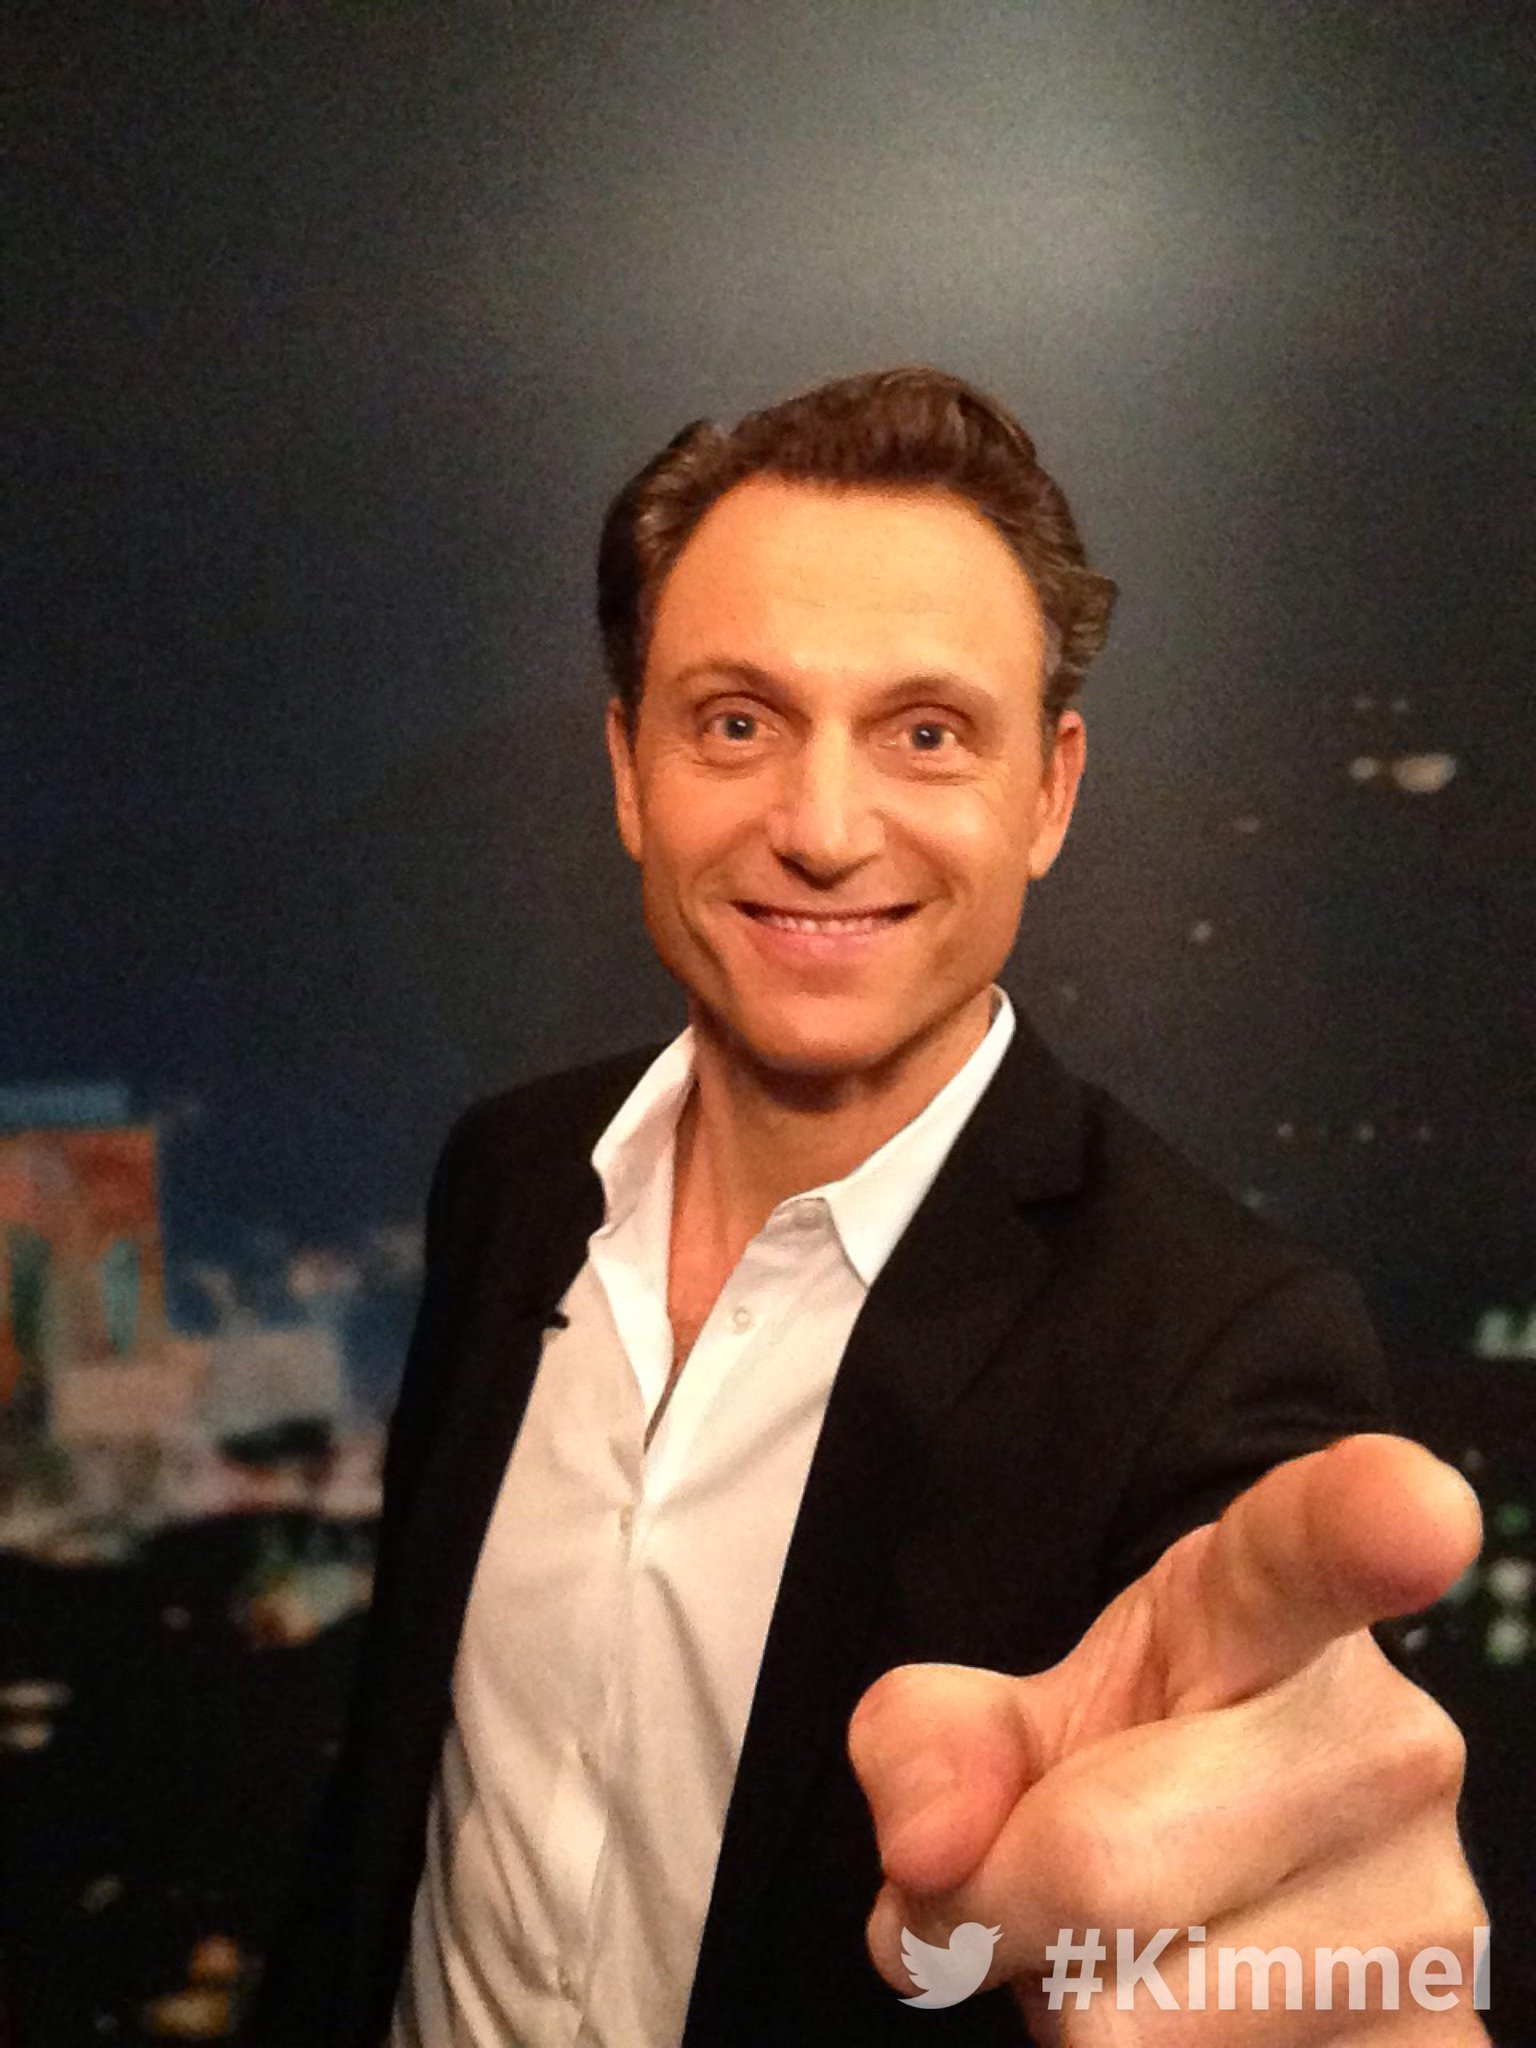 RT @JimmyKimmelLive: Backstage at #Kimmel. Tune in tonight at 11:35 10:35c on ABC with @TonyGoldwyn #Scandal #TGIT http://t.co/YBkQp0aC1L